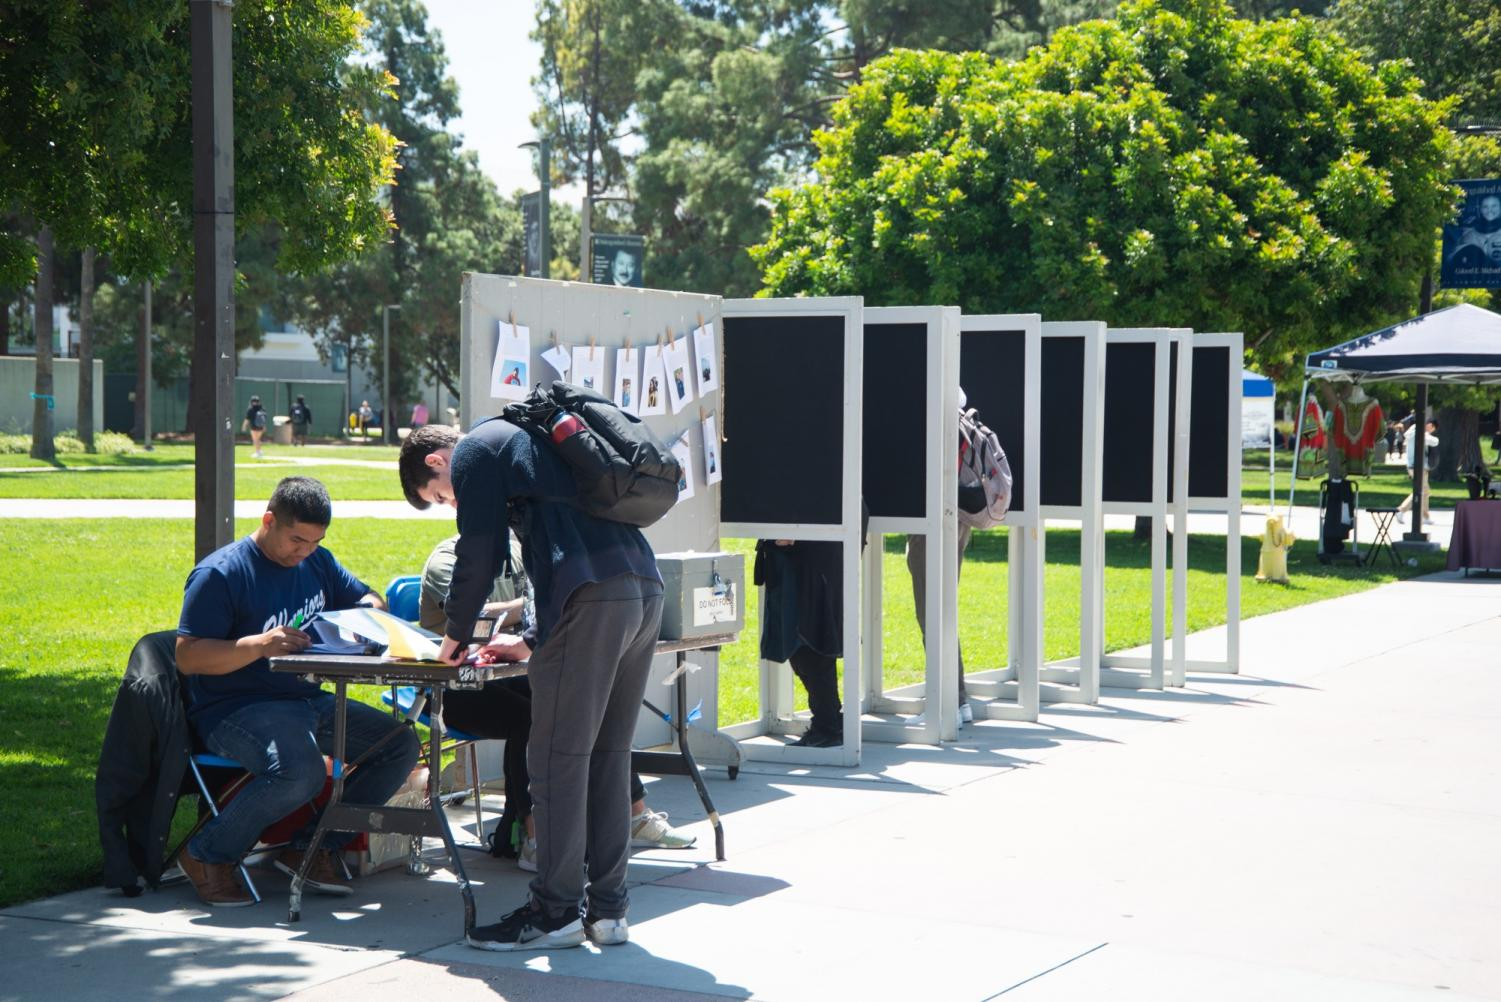 A student signs up to vote next to booths containing two voters on Wednesday, May 29. The results will be announced Friday, May 31. Photo credit: Jun Ueda